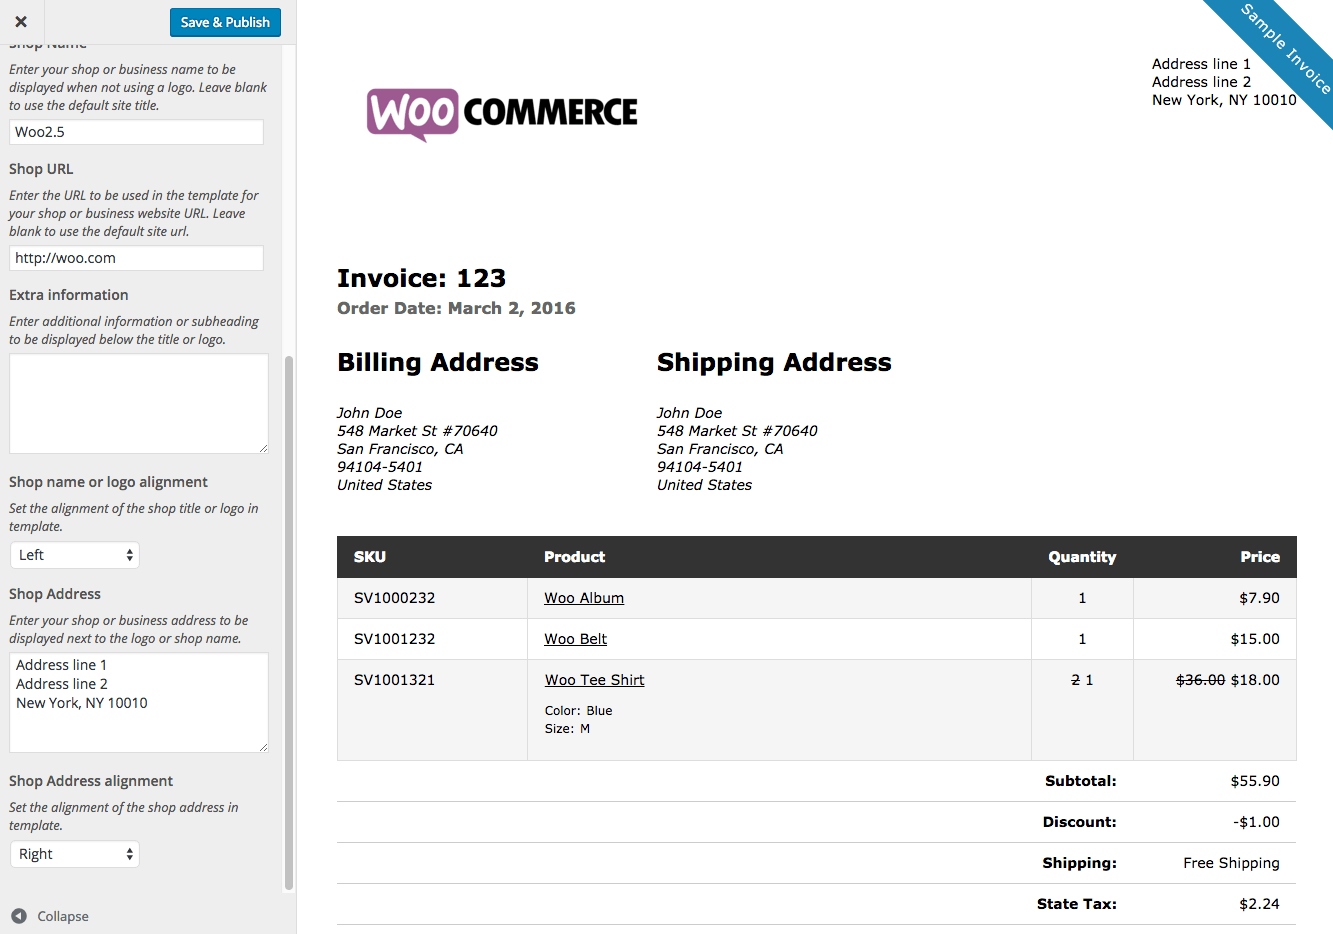 Sandiegolocksmithsus  Fascinating Woocommerce Print Invoices Amp Packing Lists  Woocommerce Docs With Magnificent Woocommerce Print Invoices  Packing Lists Customizer With Comely Invoice Header Also Vw Invoice Pricing In Addition Free Photography Invoice Template And Rental Car Invoice As Well As Invoice Creation Software Additionally Invoice Forms Pdf From Docswoocommercecom With Sandiegolocksmithsus  Magnificent Woocommerce Print Invoices Amp Packing Lists  Woocommerce Docs With Comely Woocommerce Print Invoices  Packing Lists Customizer And Fascinating Invoice Header Also Vw Invoice Pricing In Addition Free Photography Invoice Template From Docswoocommercecom